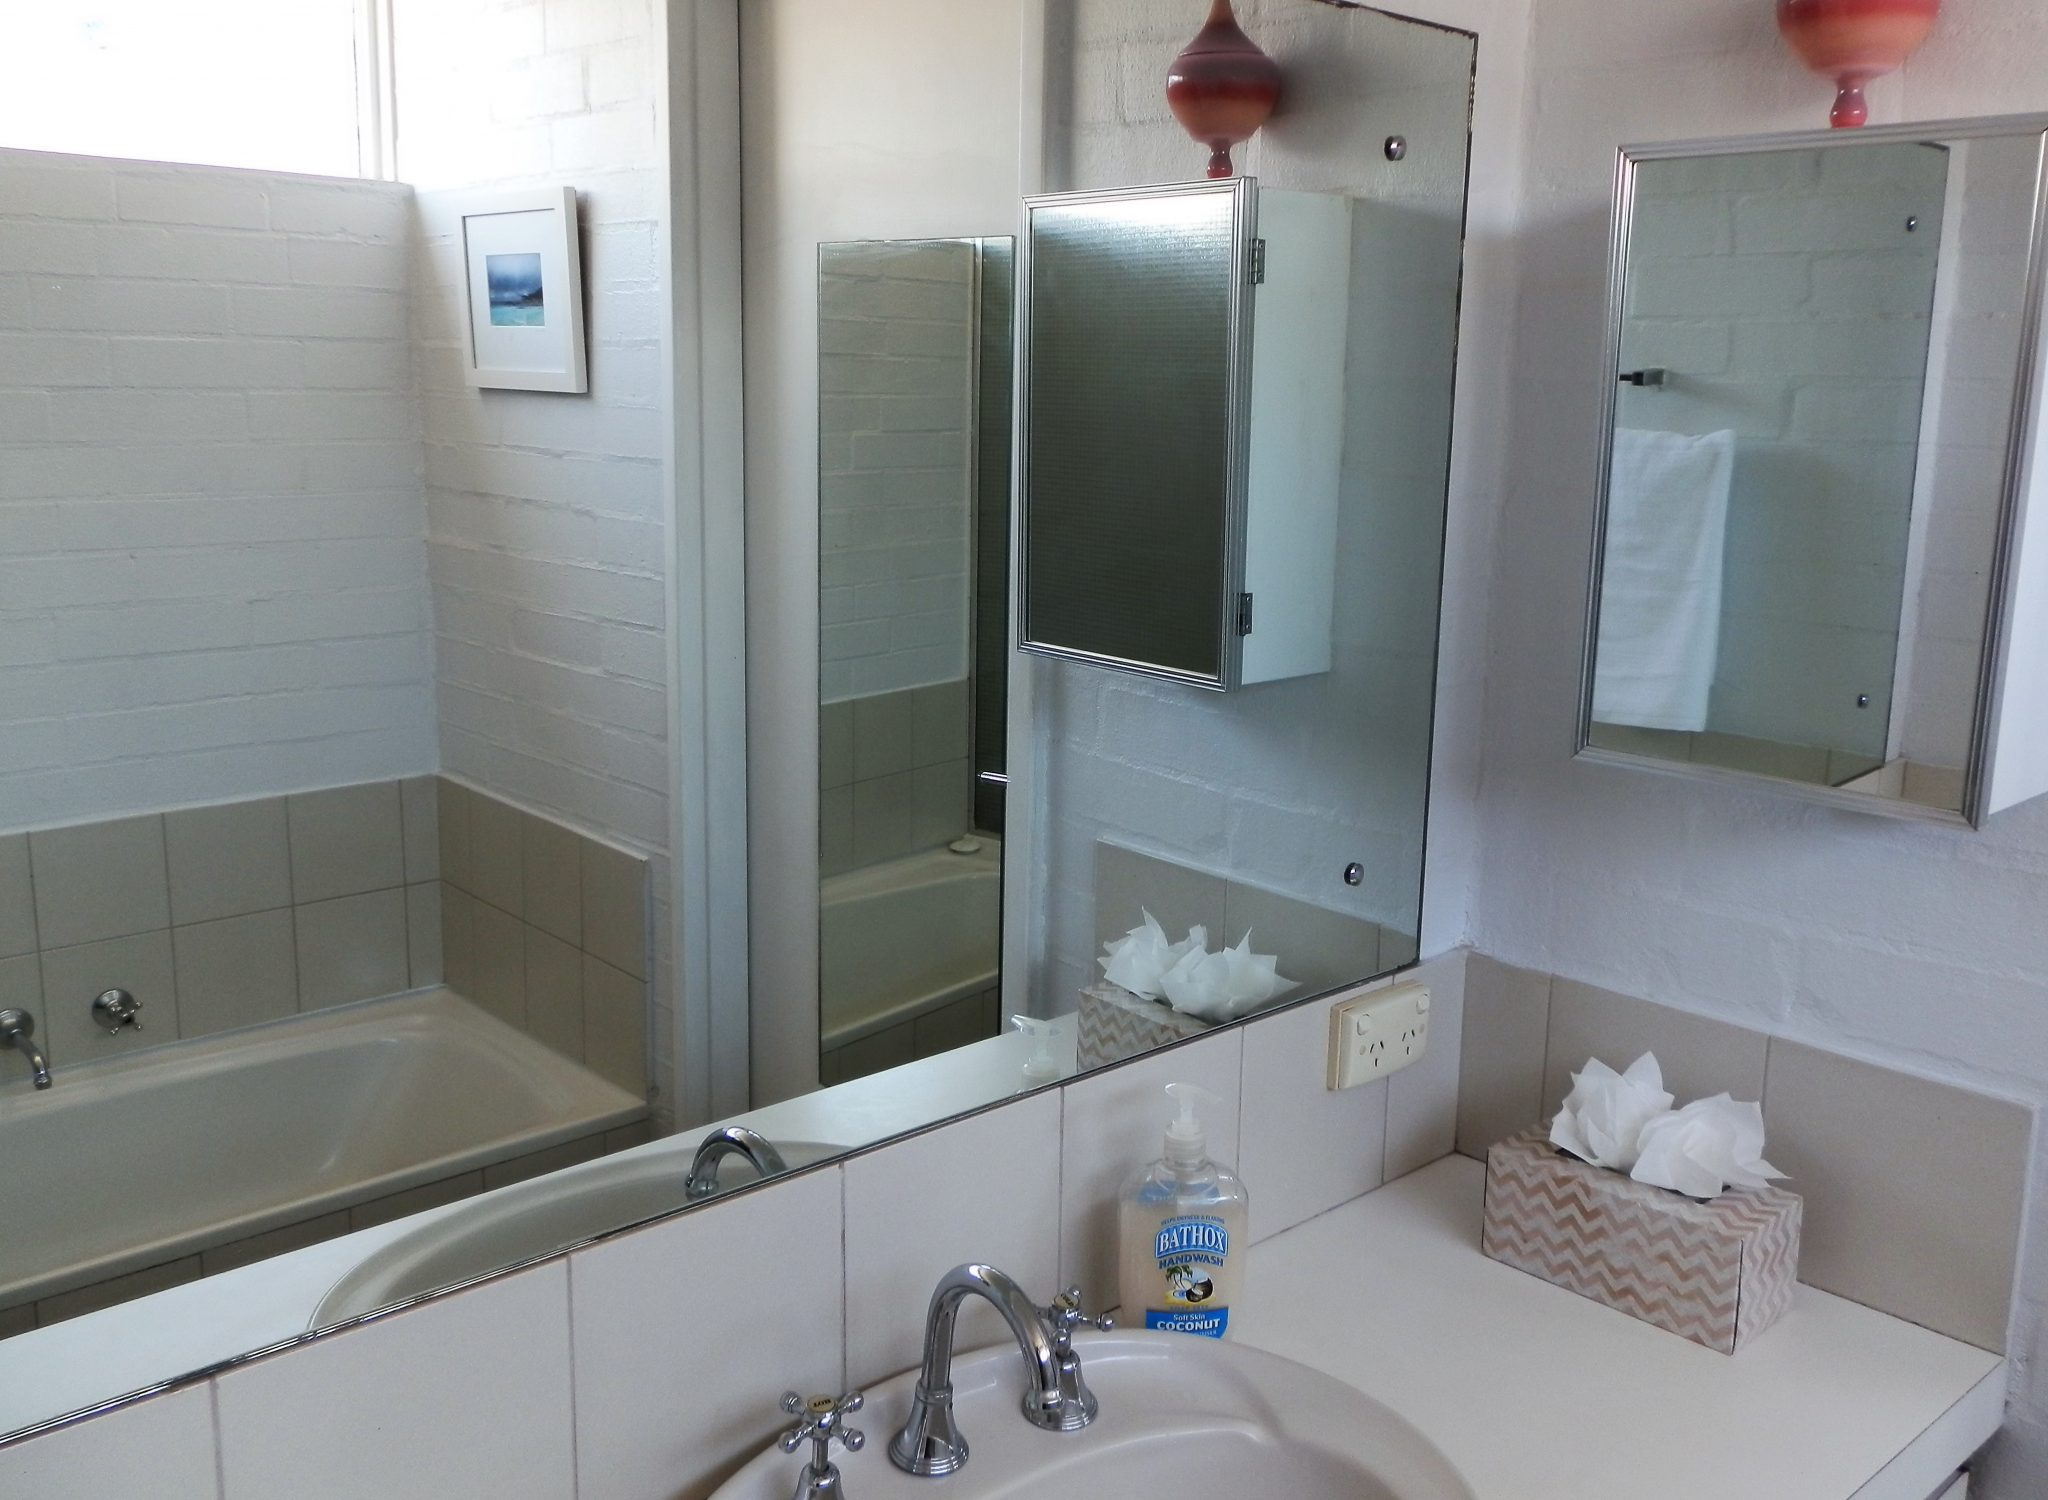 Bathroom at Suffolk street Villa Fremantle